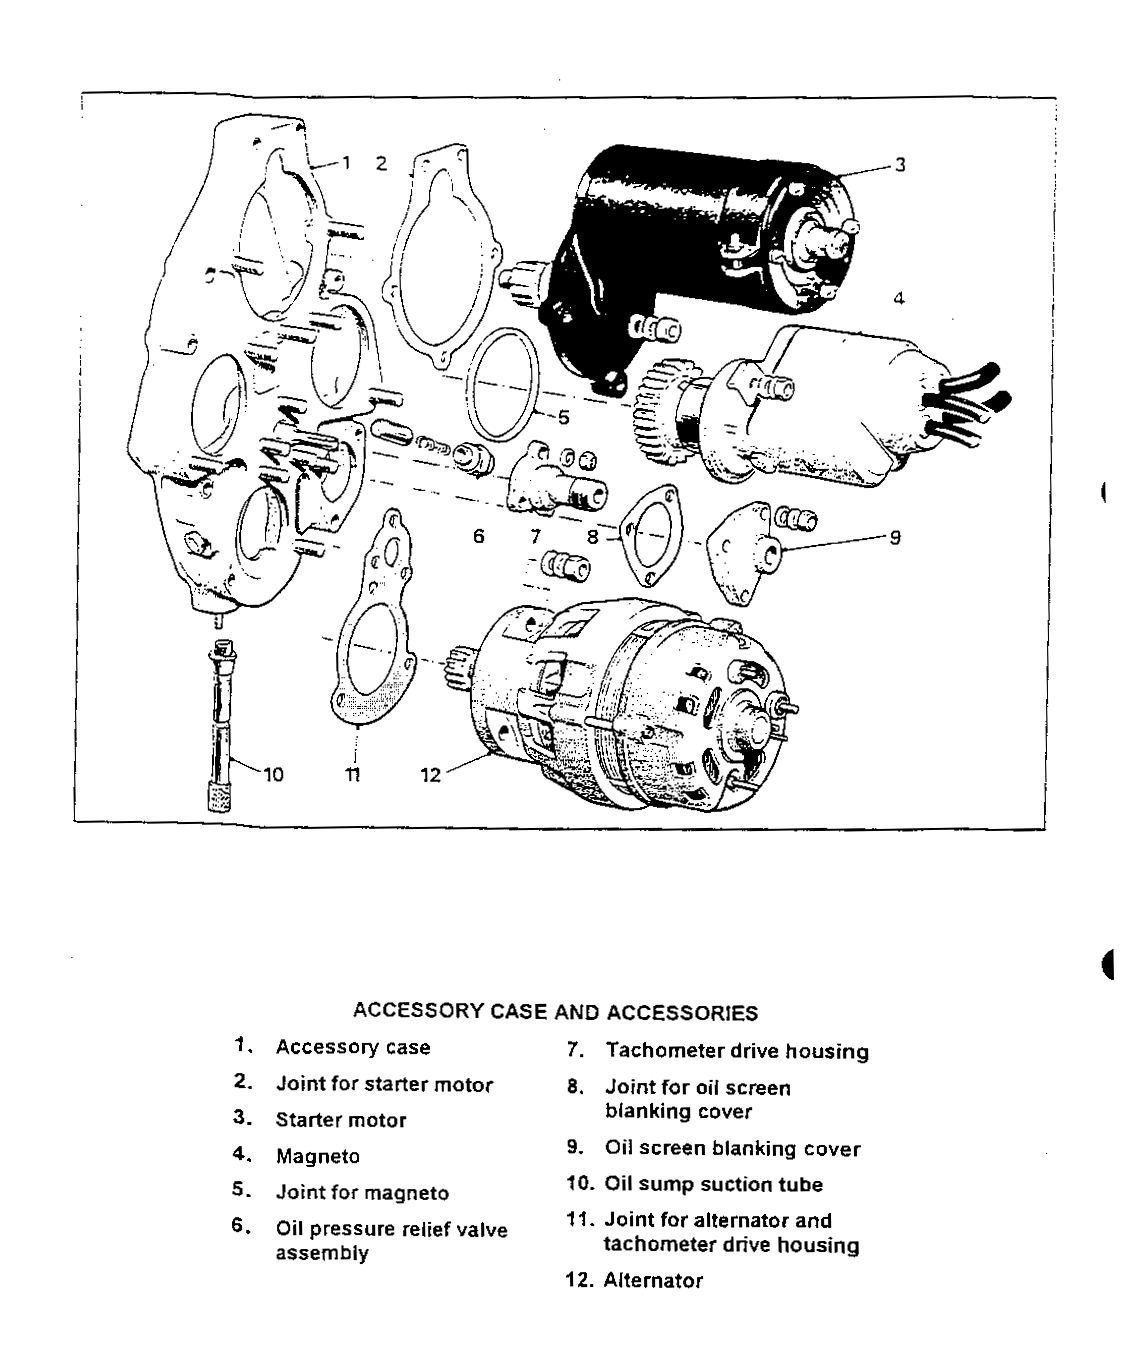 small resolution of gear trains containing both spur and bevel type gears are used in the different types of engines for driving engine components and accessories